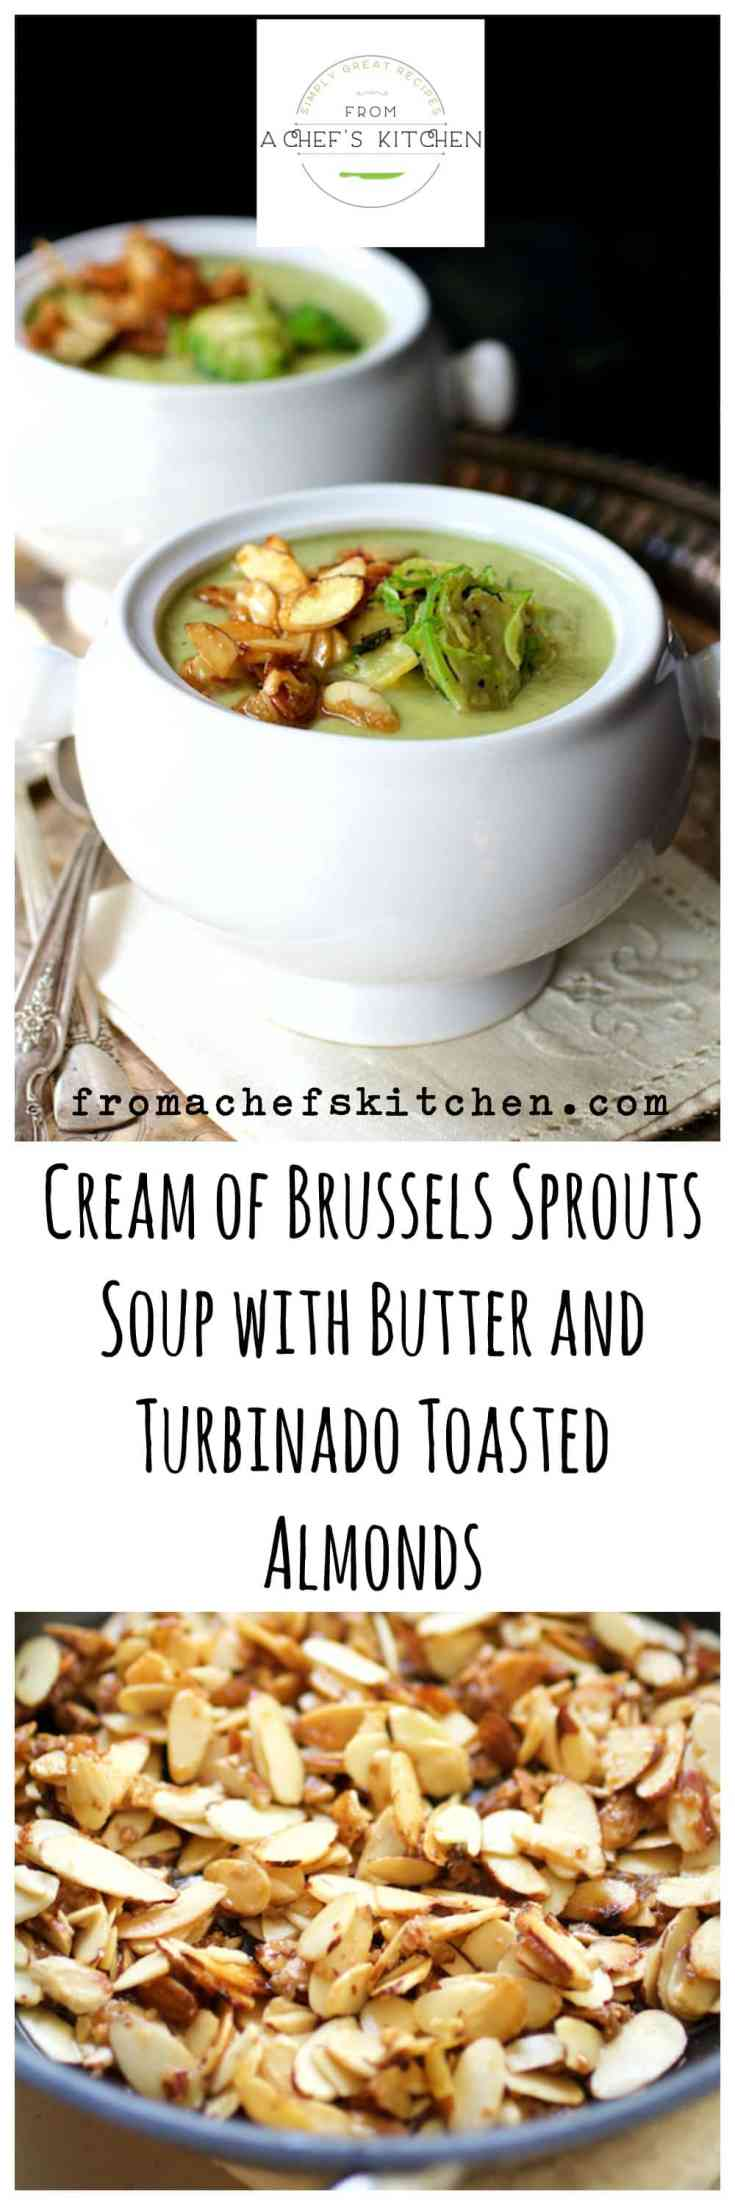 Cream of Brussels Sprout Soup with Butter and Turbinado Toasted Almonds makes a show-stopping soup starter for your holiday table! #brusselssprout #brusselssproutssoup #soup #thanksgivingrecipes #christmasrecipes